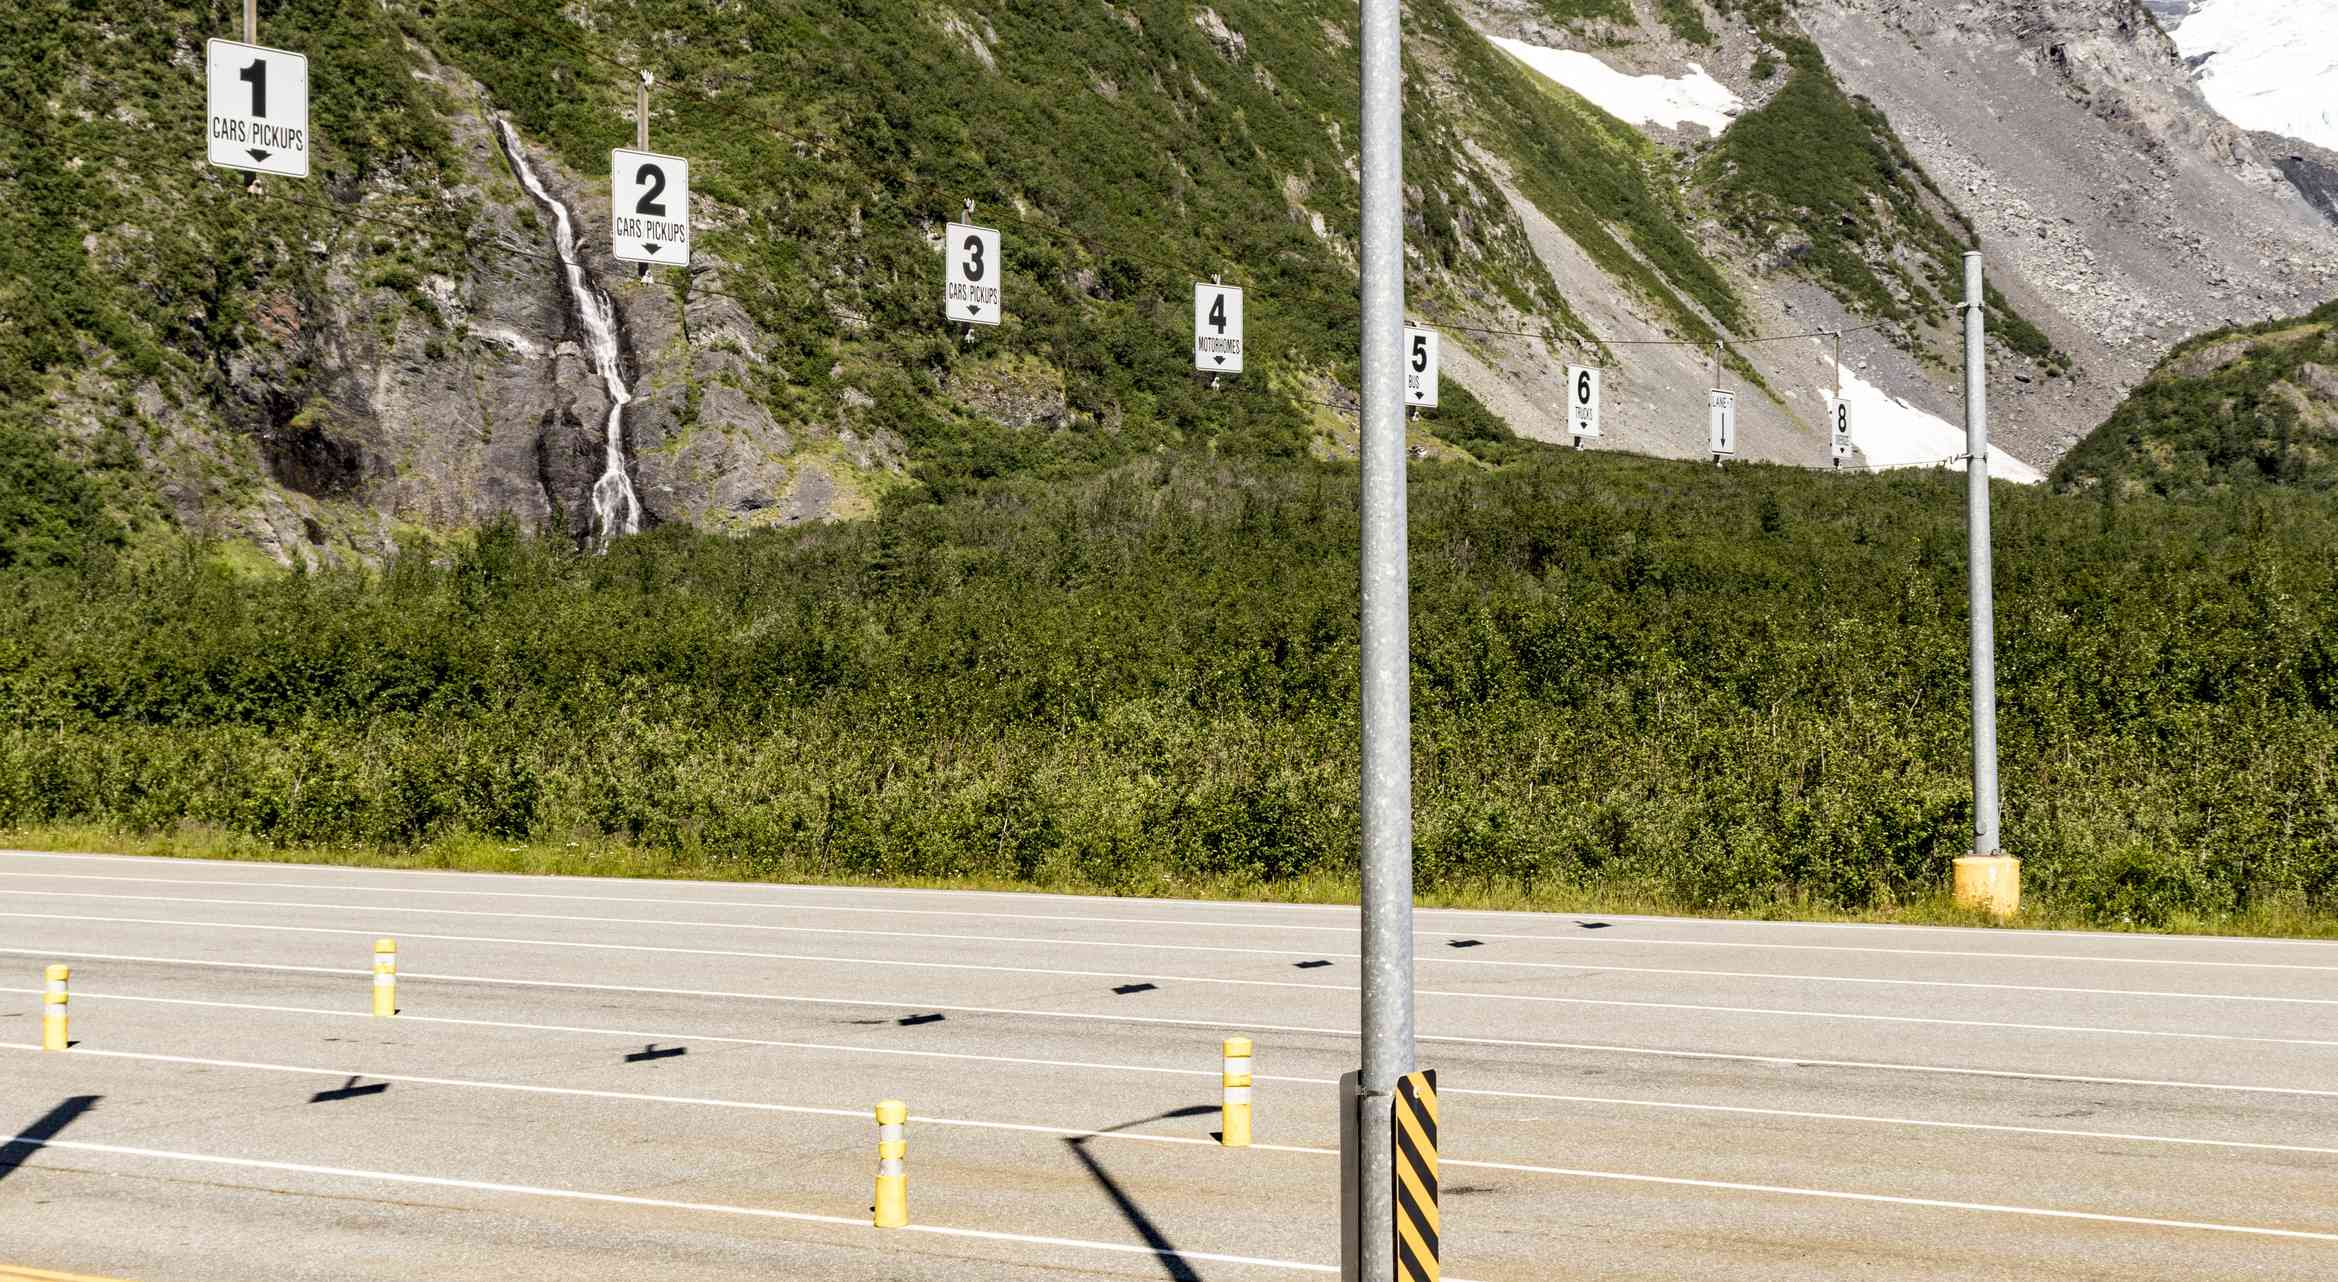 Numbers show the lane markings at the entrance to the Whittier Tunnel in Alaska.